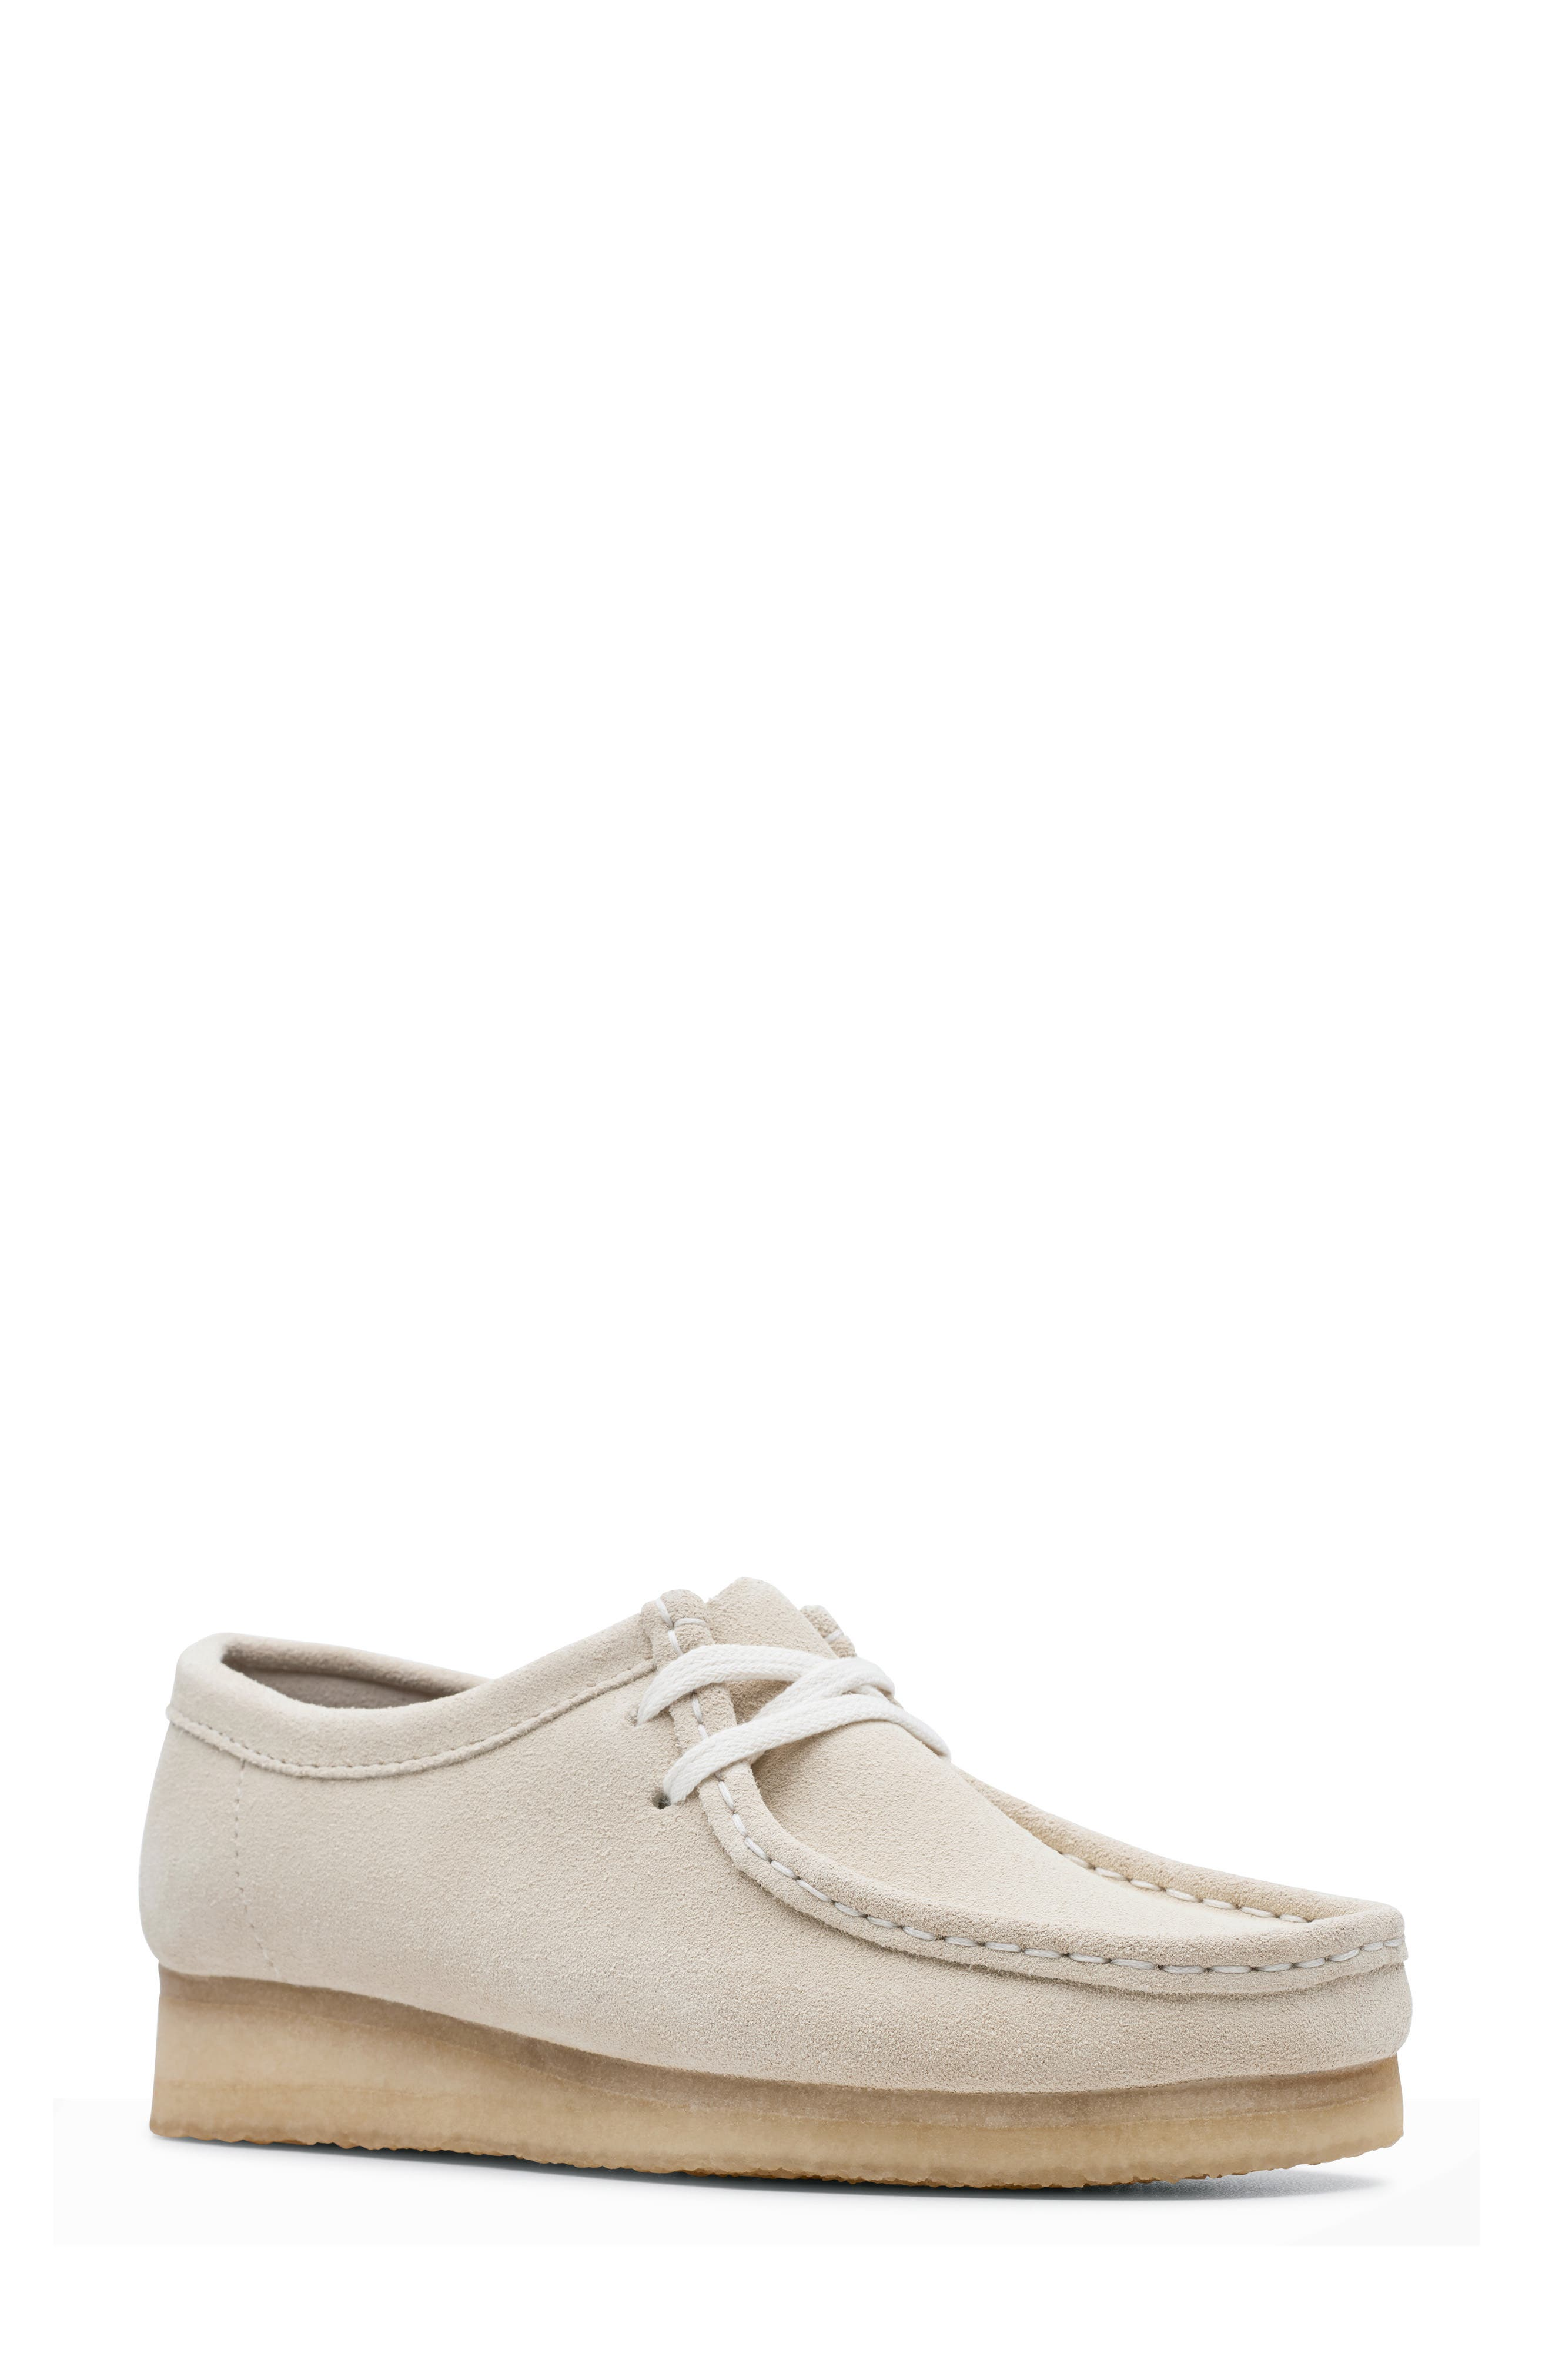 Wallabee Chukka Boot, Main, color, OFF WHITE SUEDE